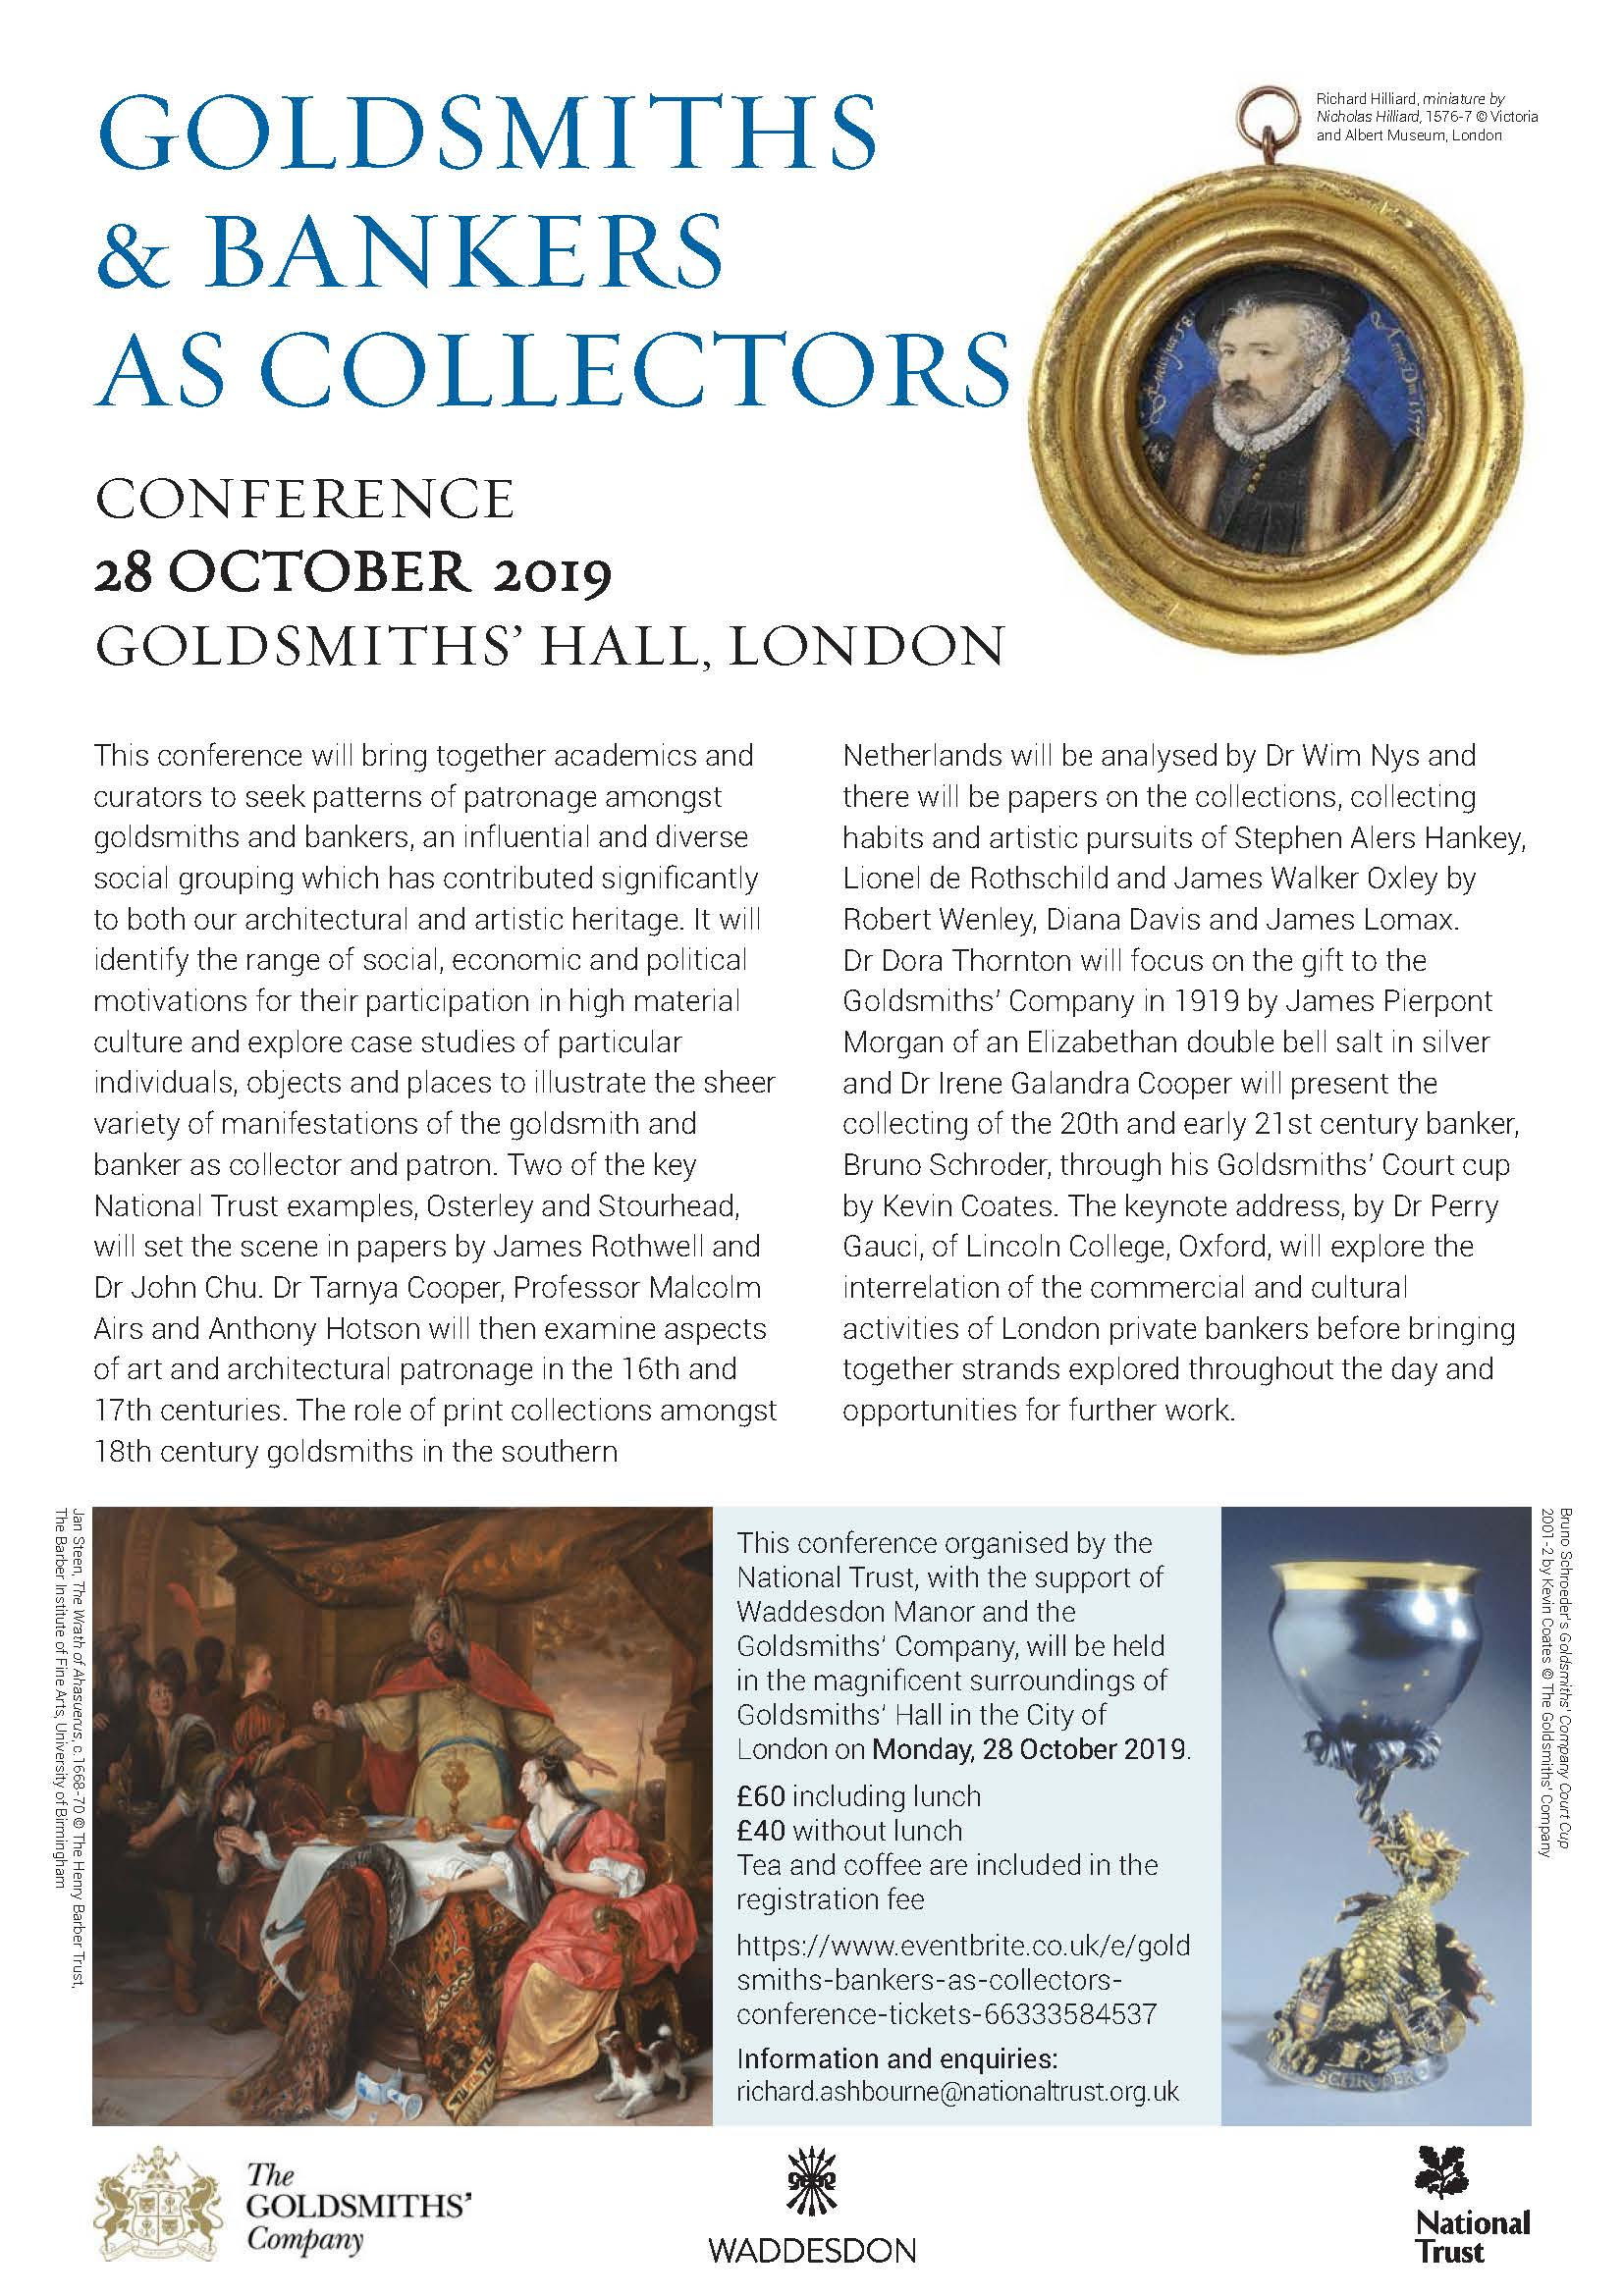 CONFERENCE - Goldsmiths & Bankers as Collectors